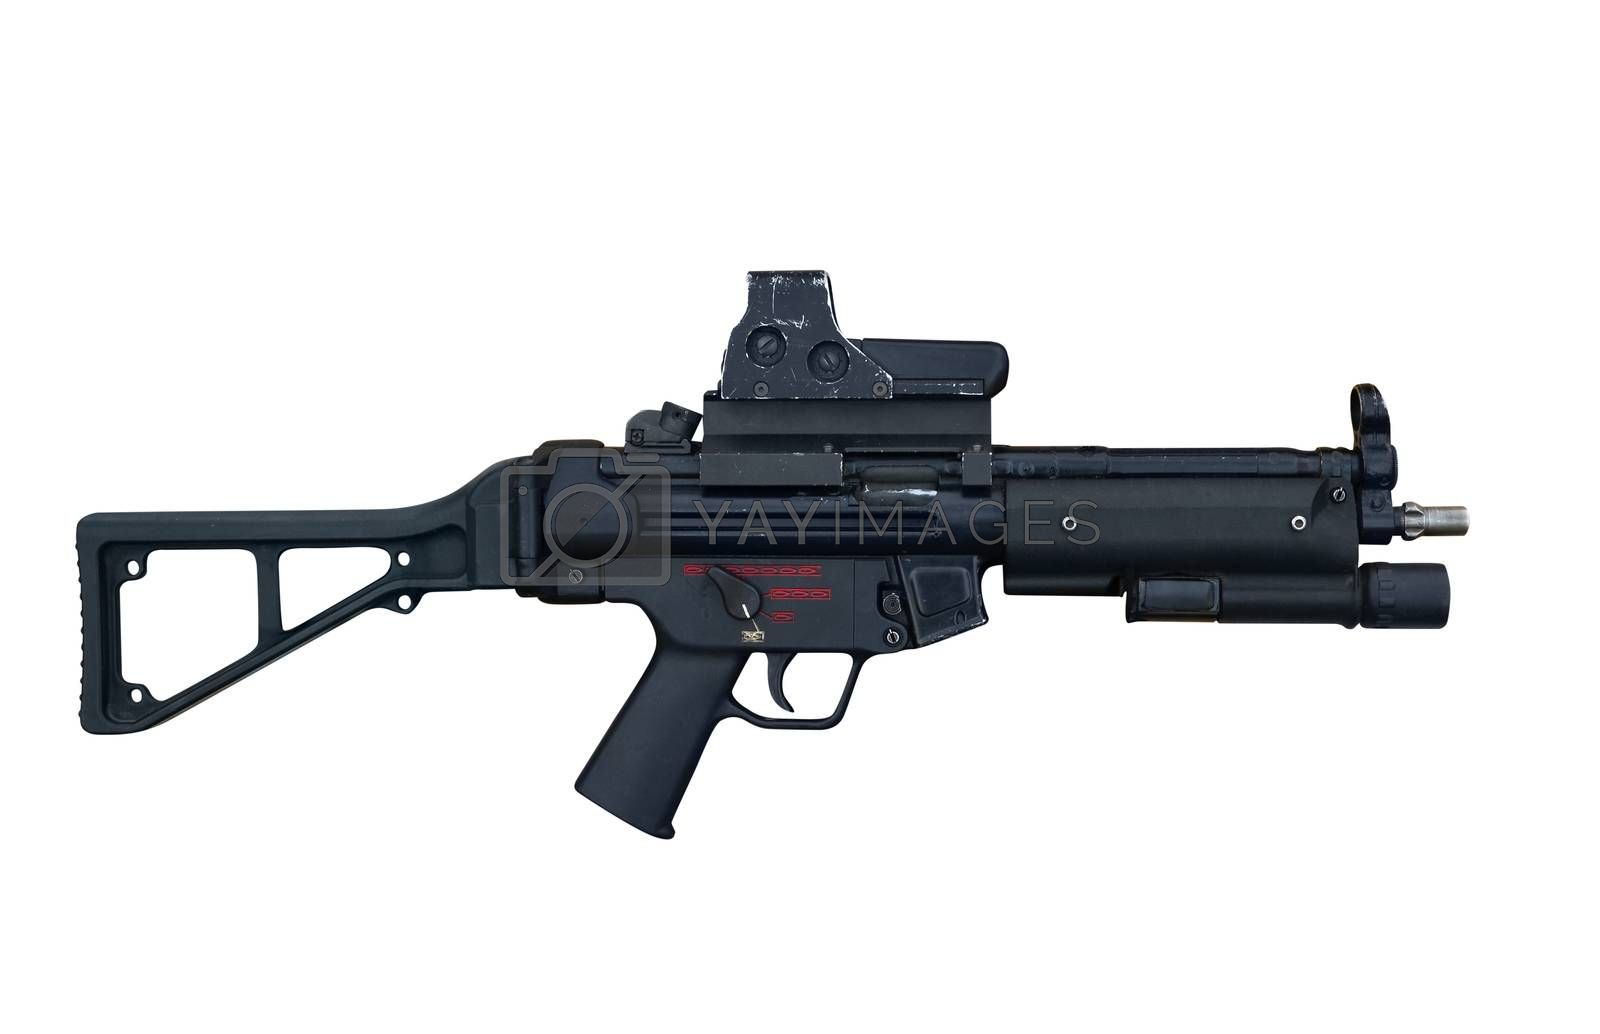 Royalty free image of Heckler and Koch machine gun mp5 E6 by Vectorex